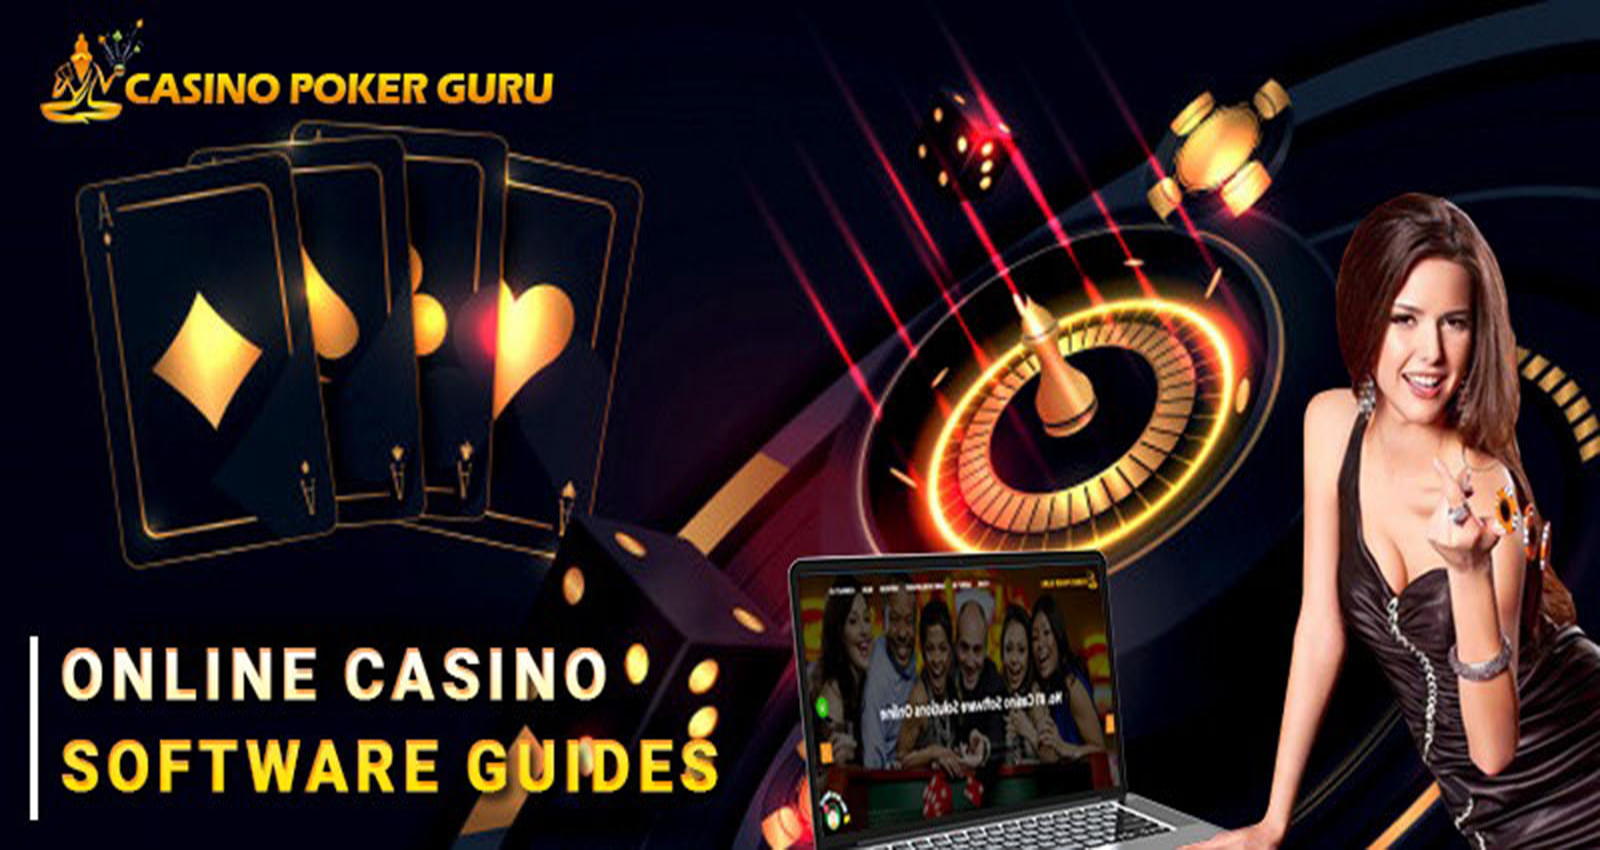 Online Casino Software Guides